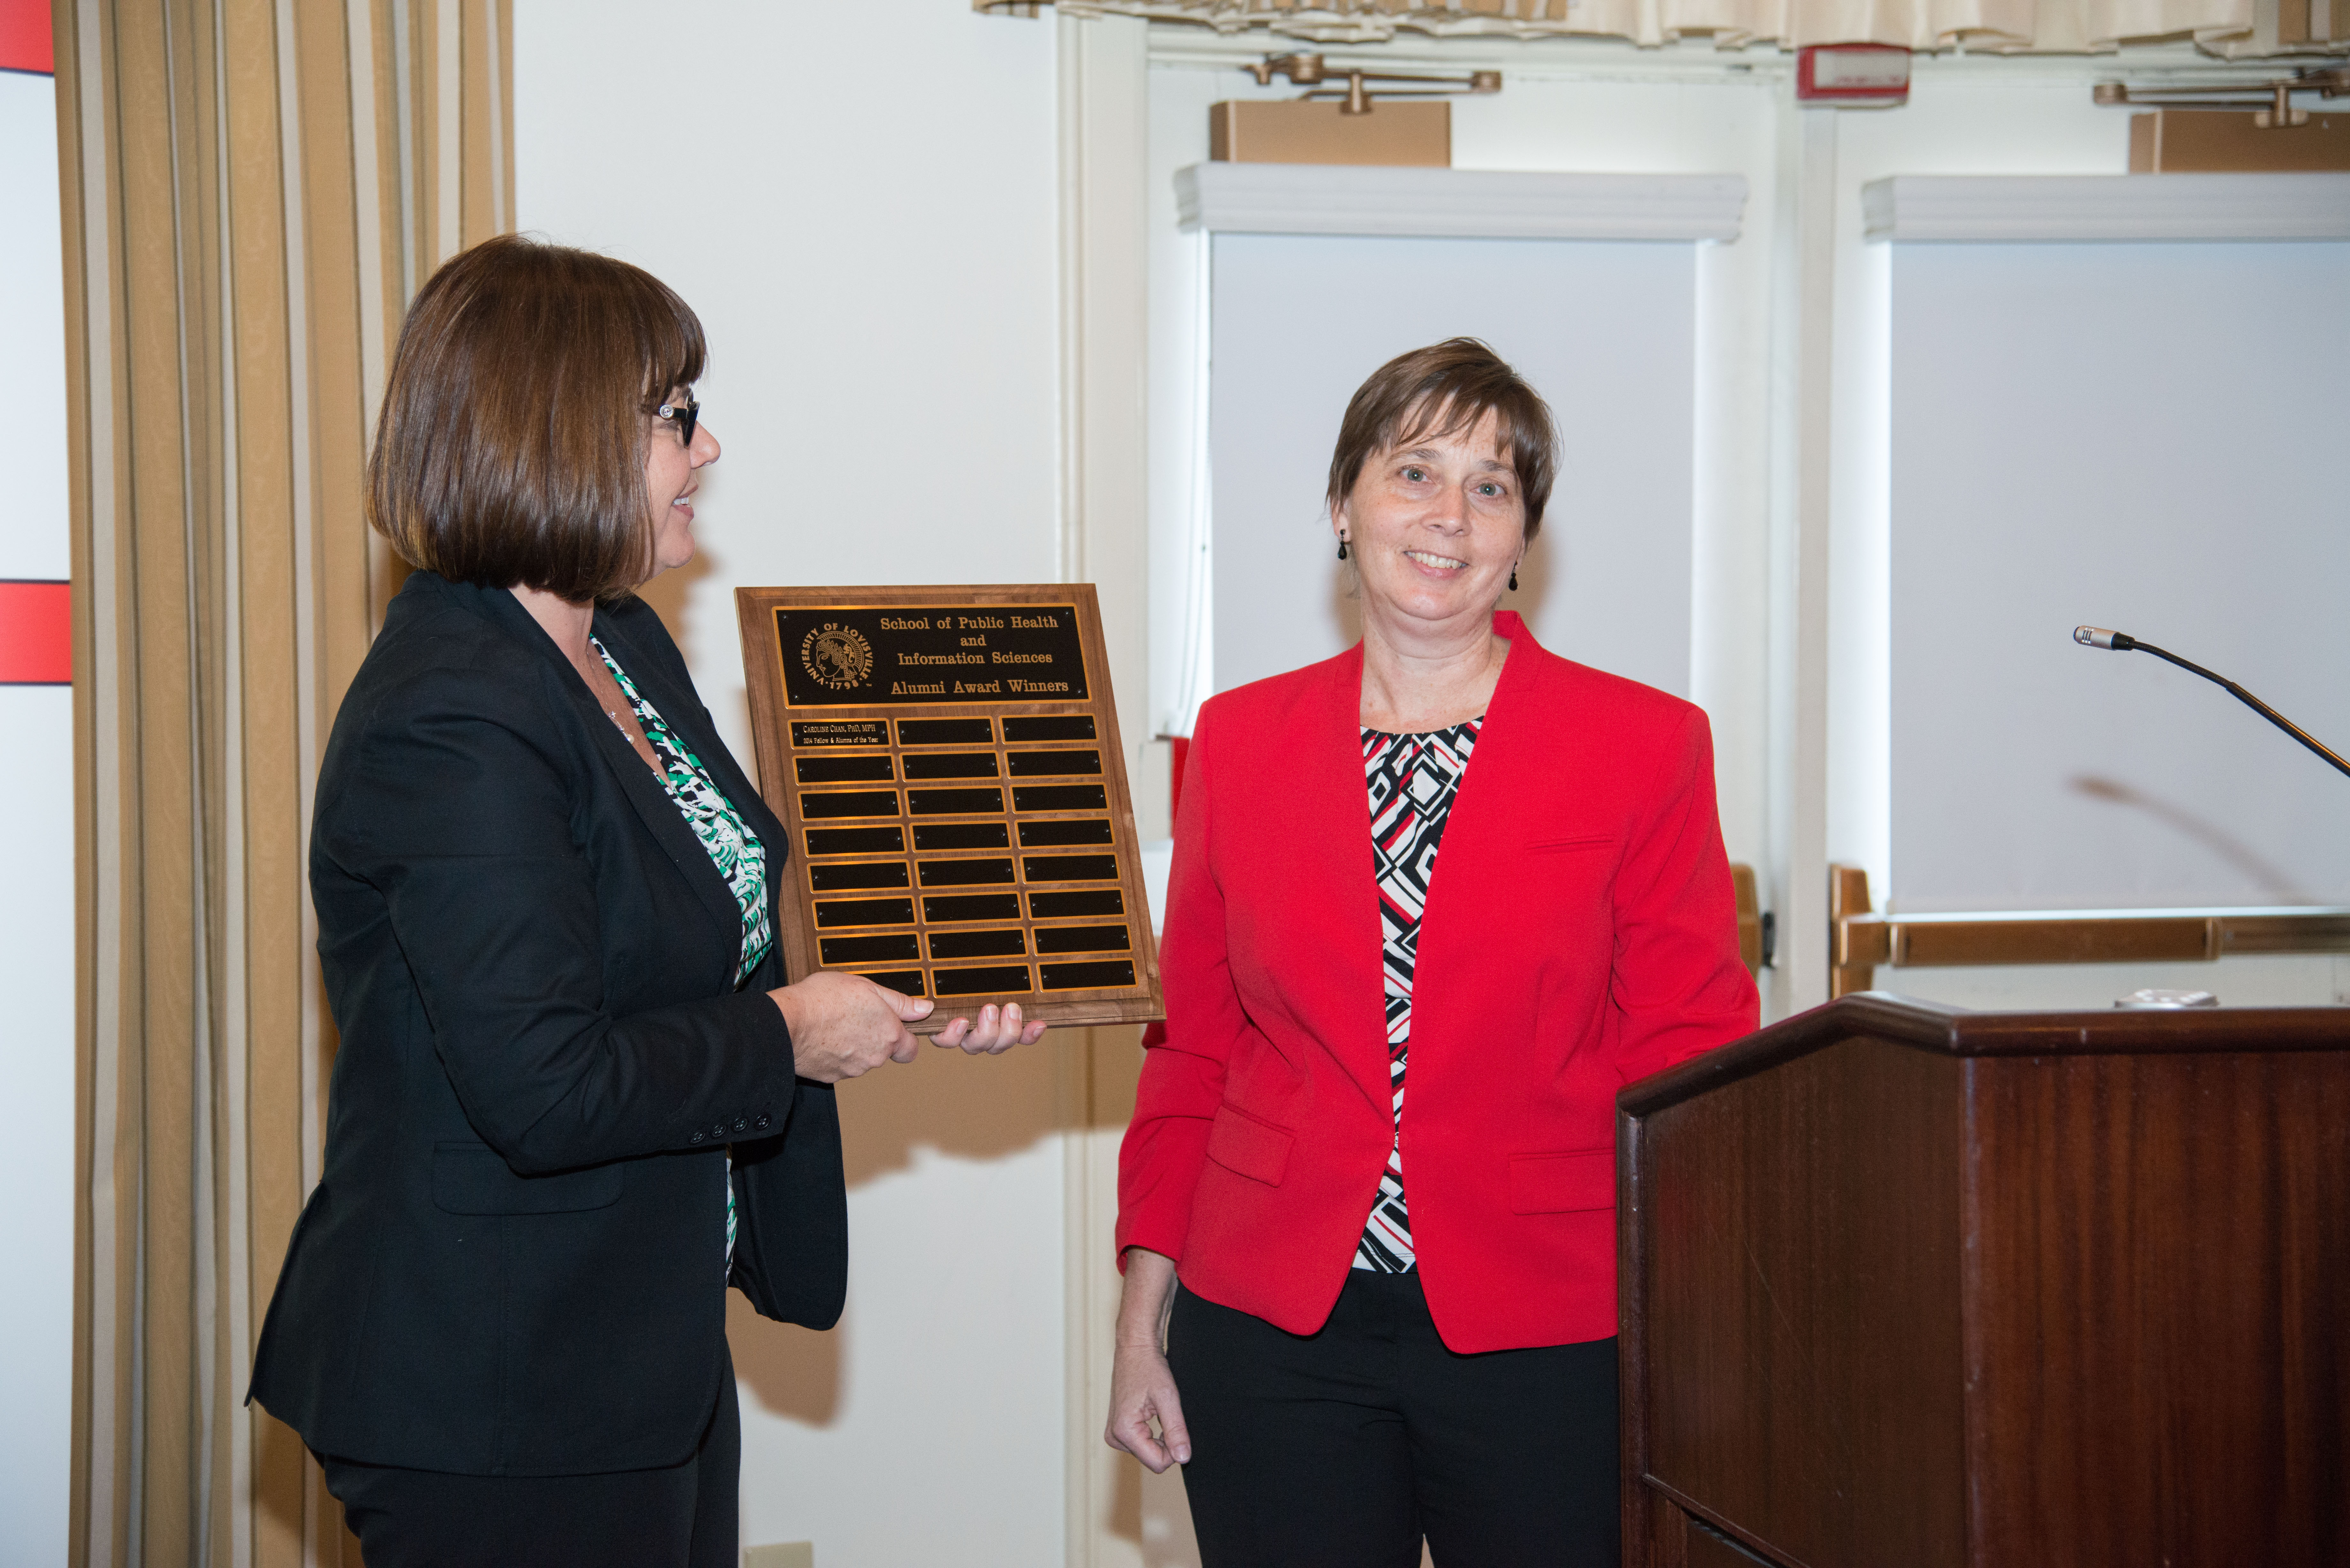 Dr. Caroline Chan named SPHIS Alumnus of the Year